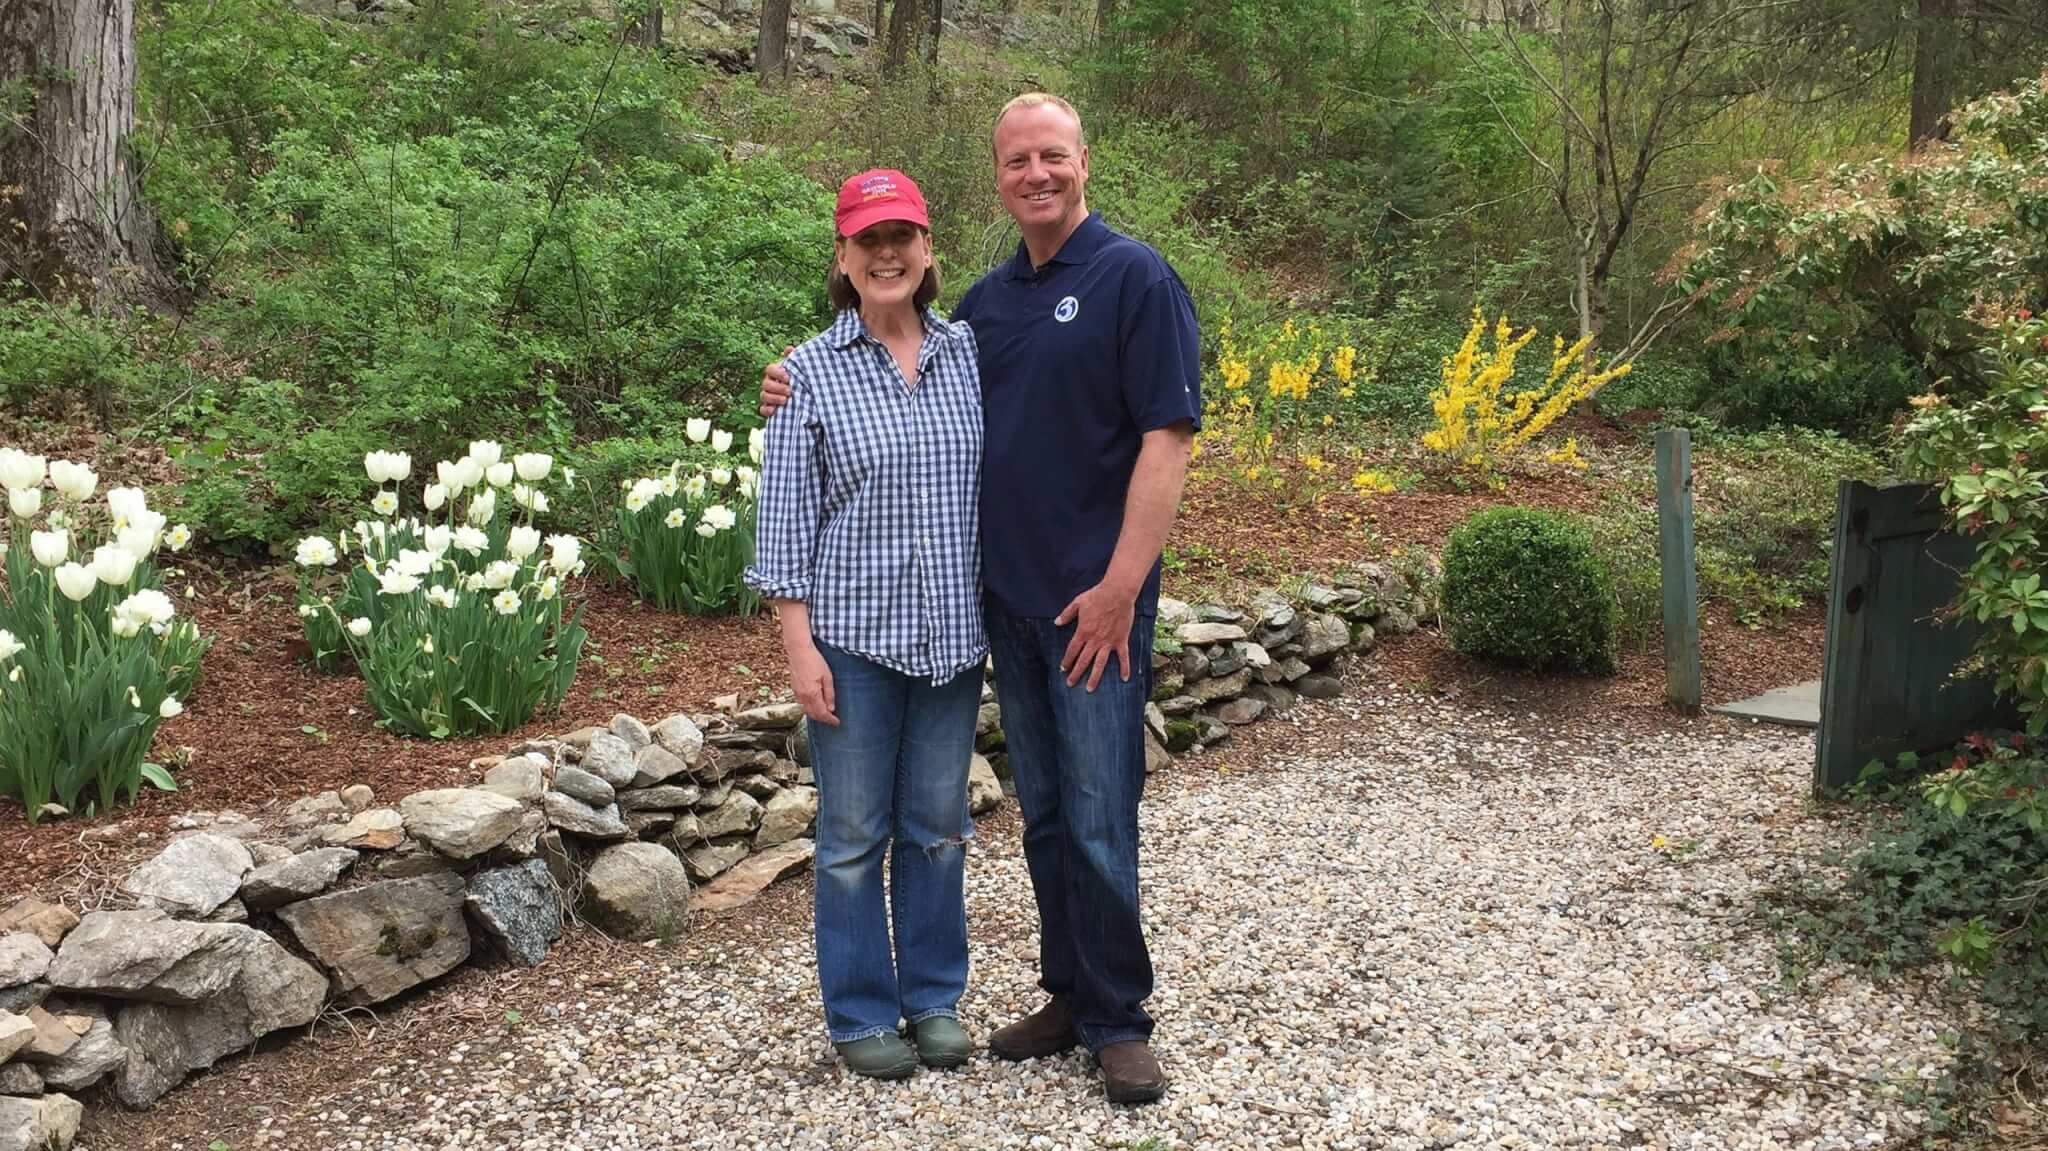 Better Connecticut: Garden Talk With Scot Haney